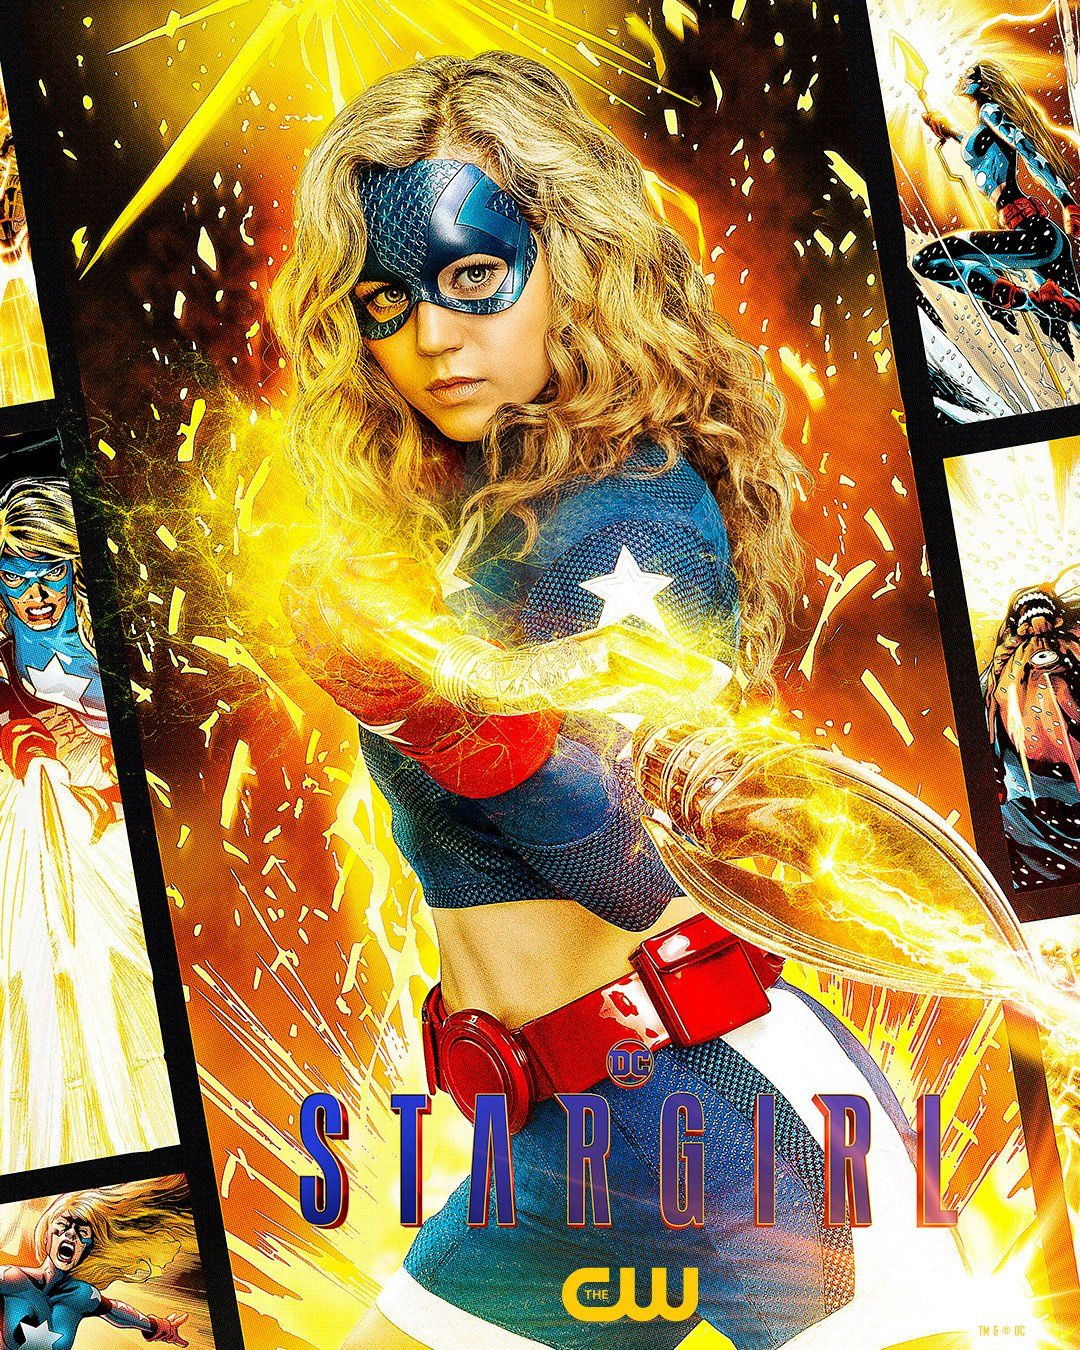 Pin by COMIC SHADE! on CW!: STARGIRL! in 2020 | My heart